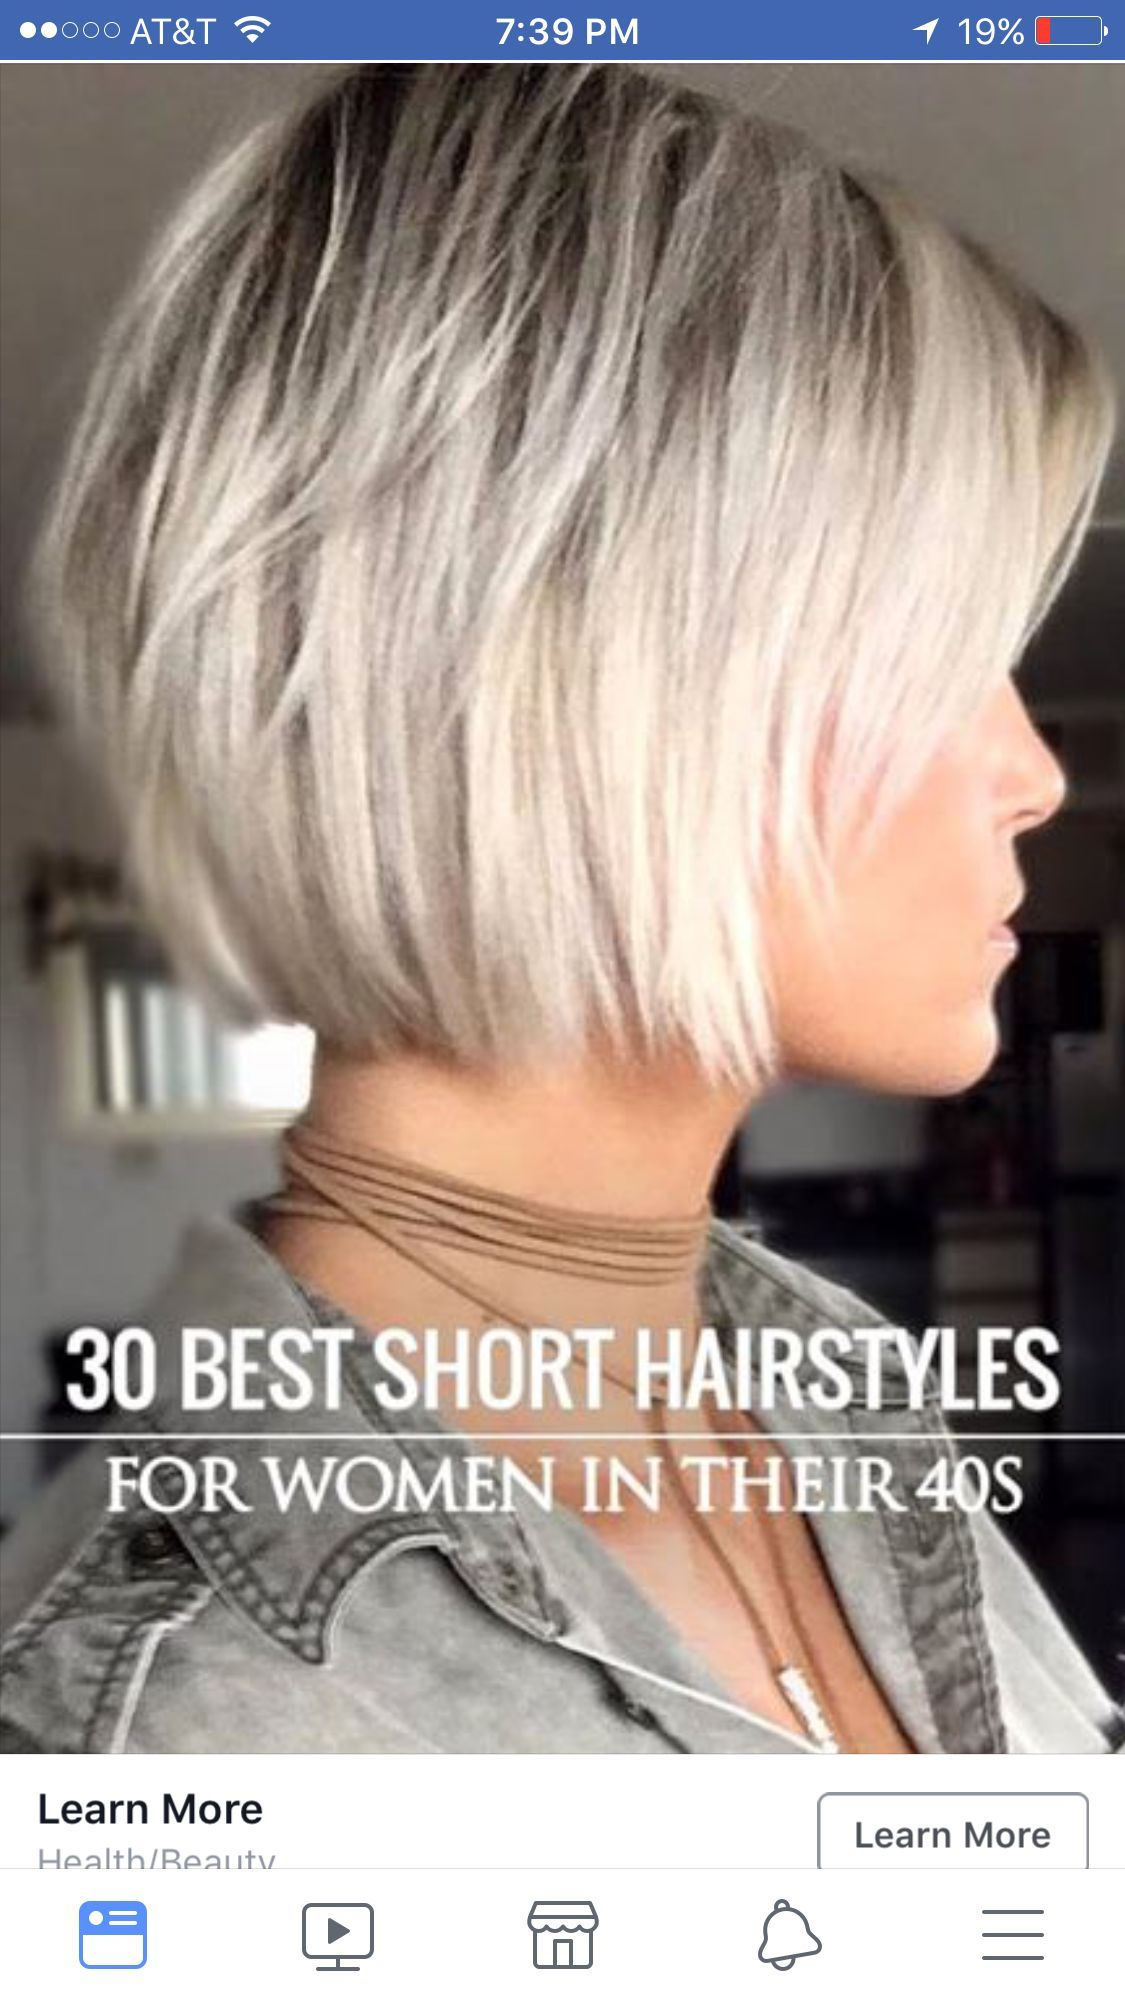 39++ Haircuts for women in their 40s ideas